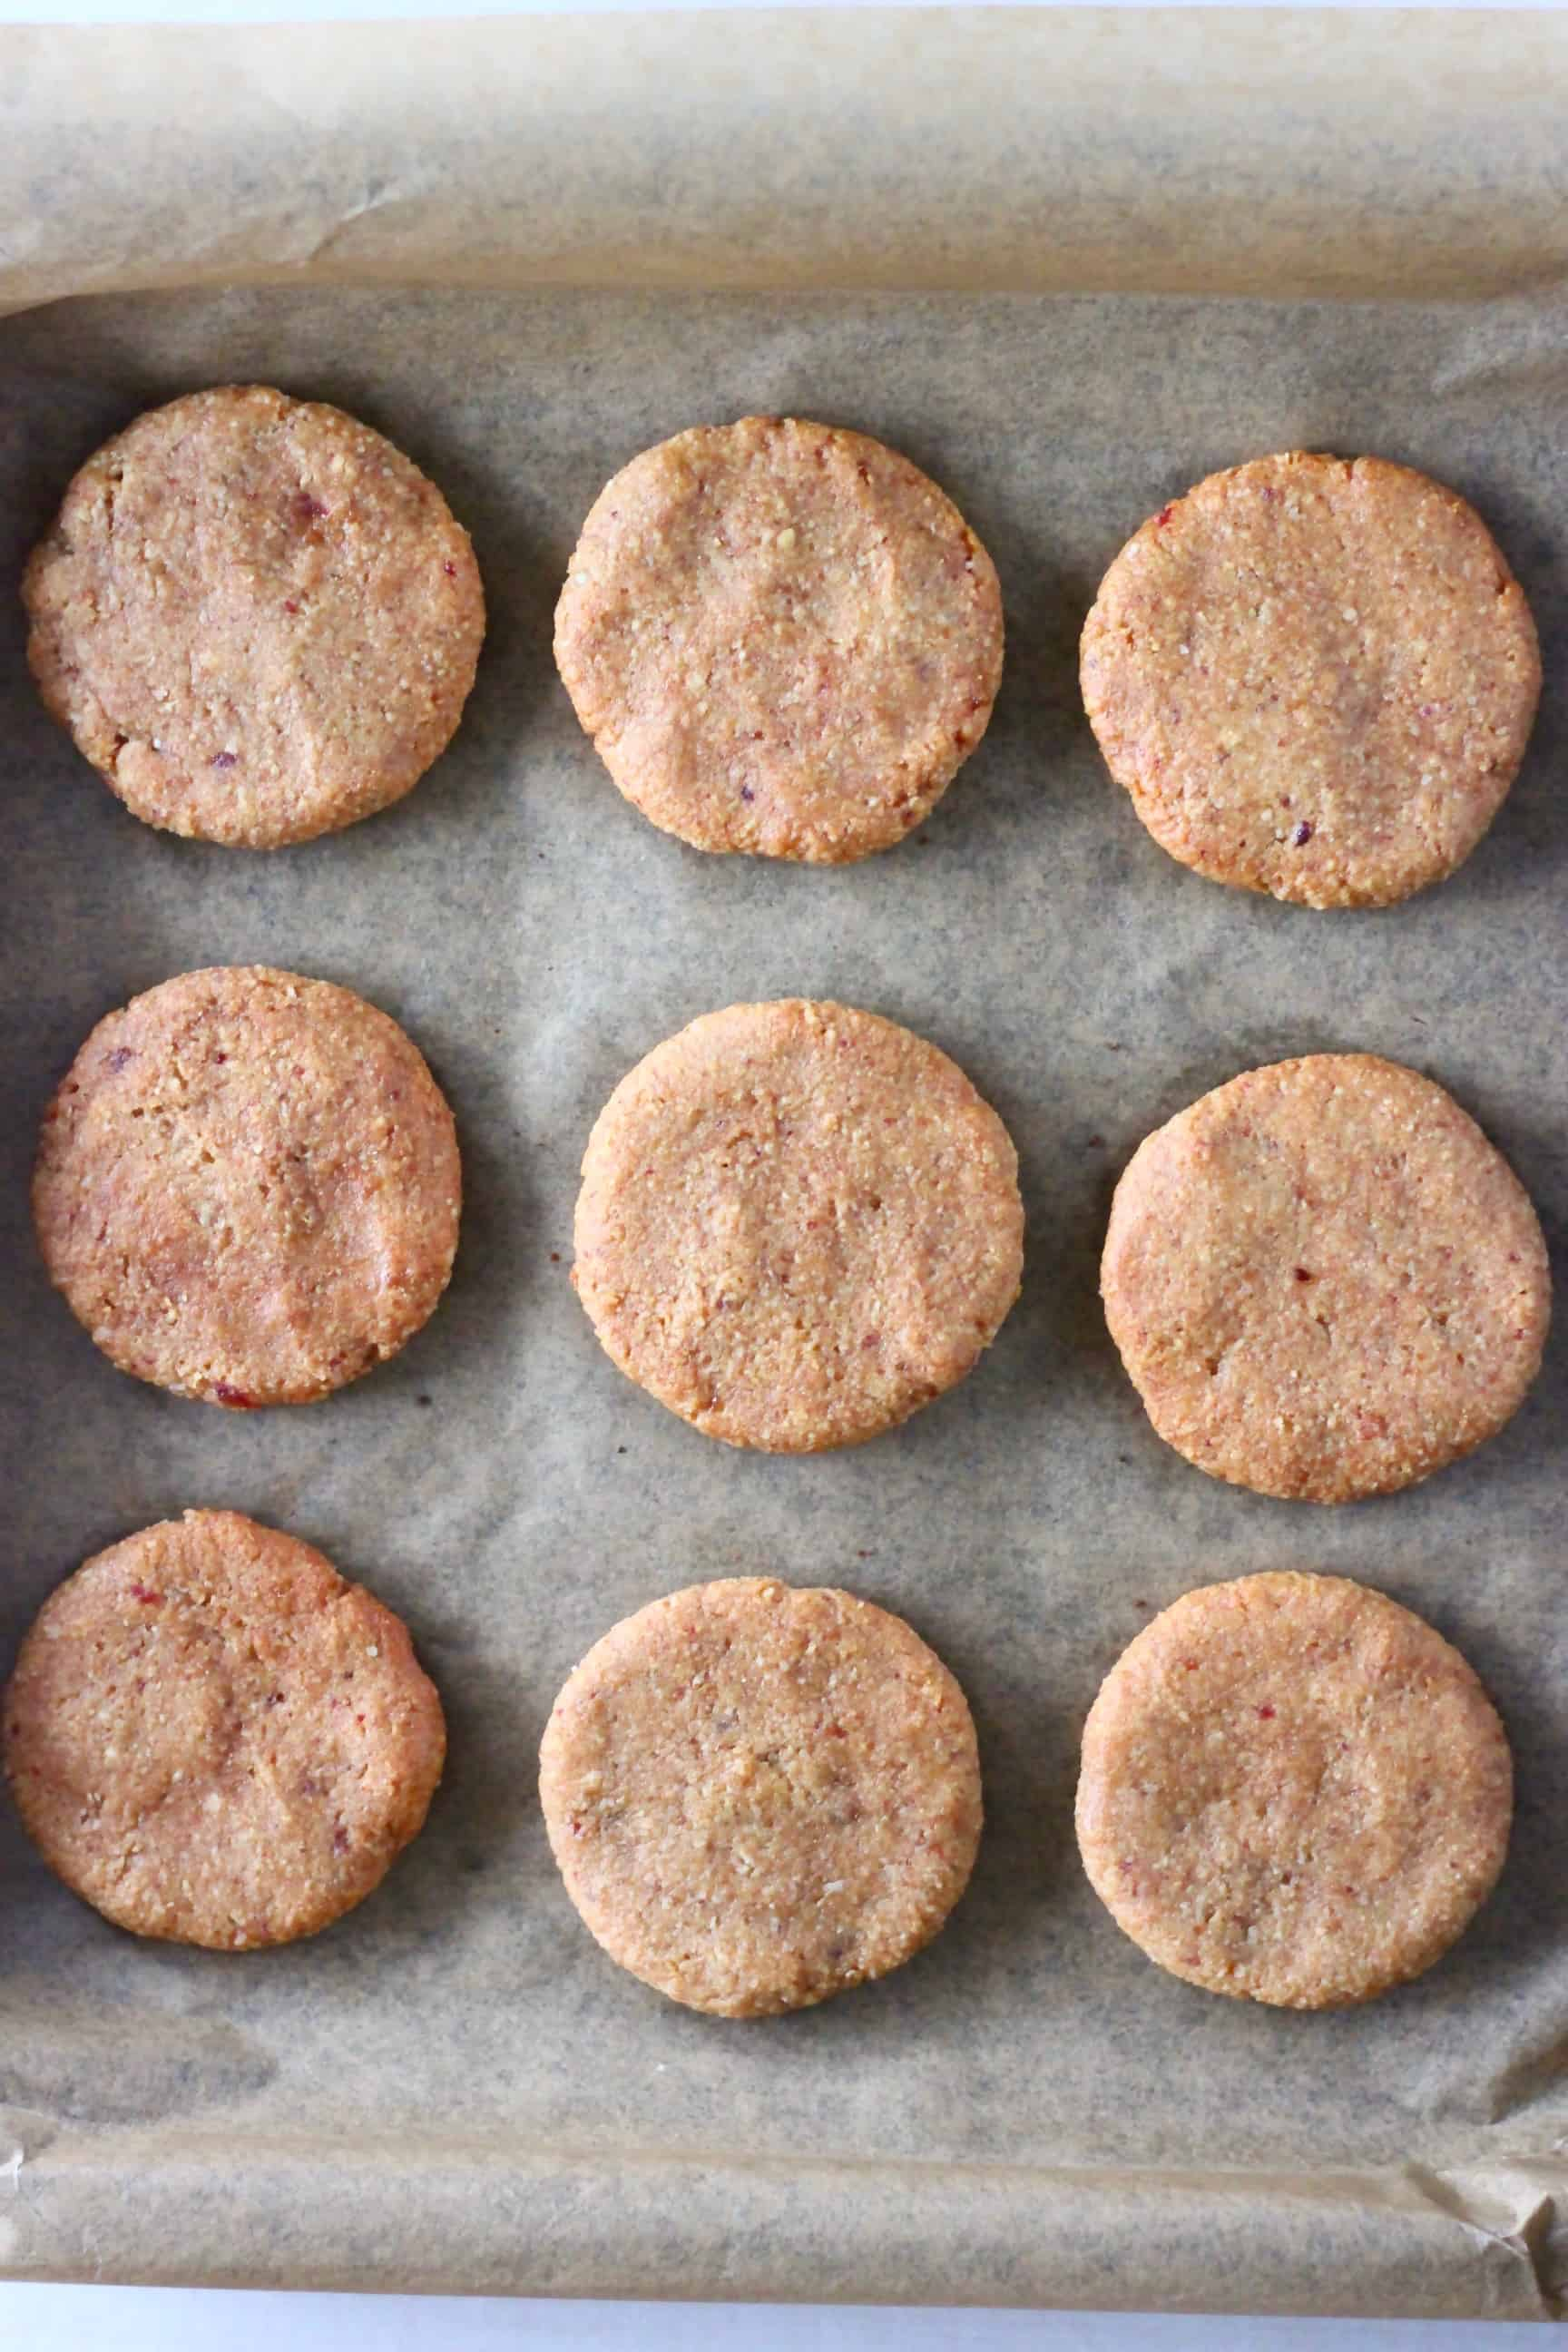 Nine almond butter cookies on a sheet of brown baking paper